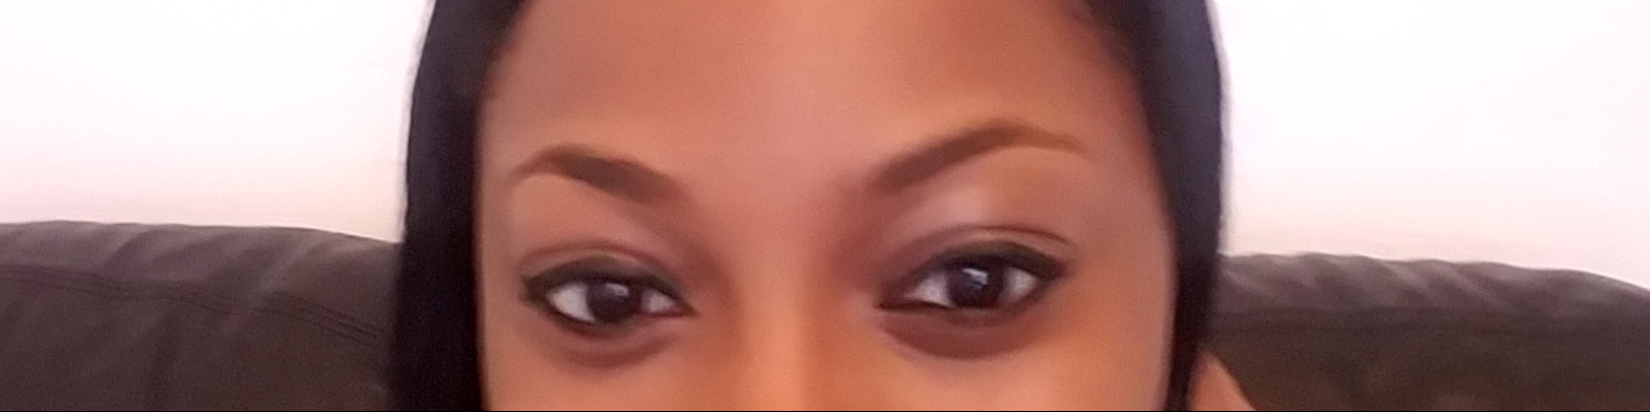 My eyebrows before microblading